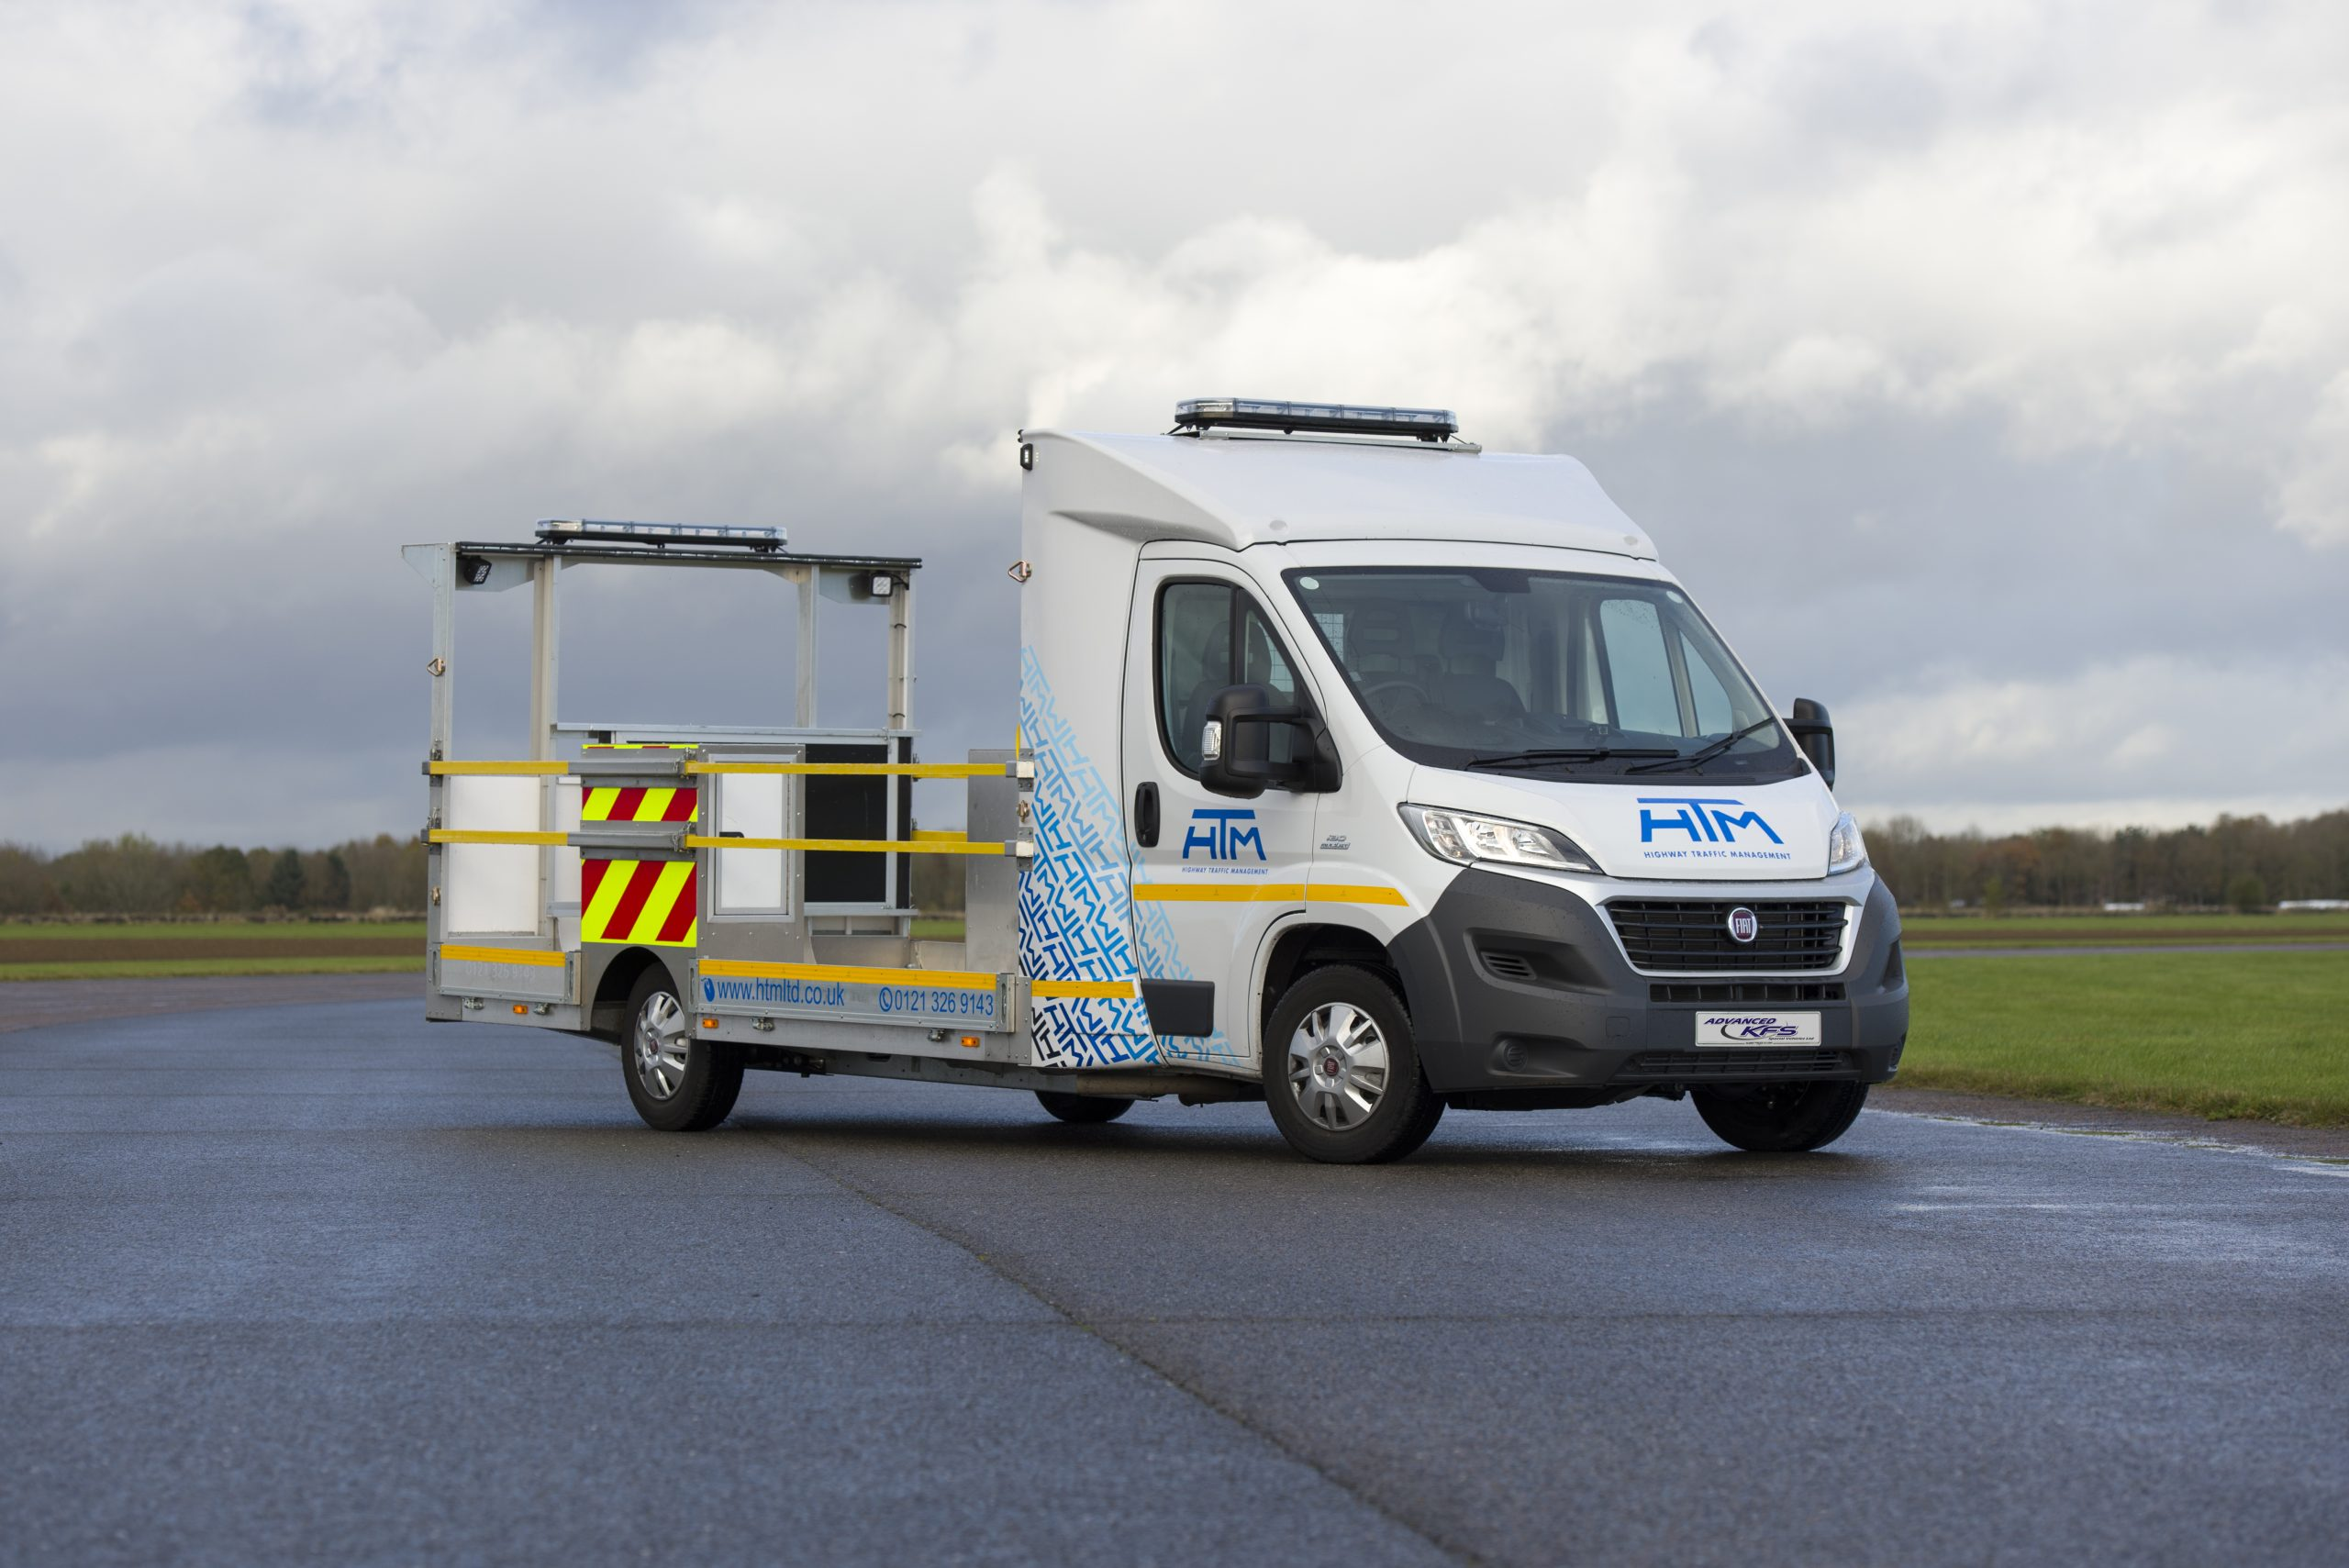 AKFS to exhibit at The CV Show 2019